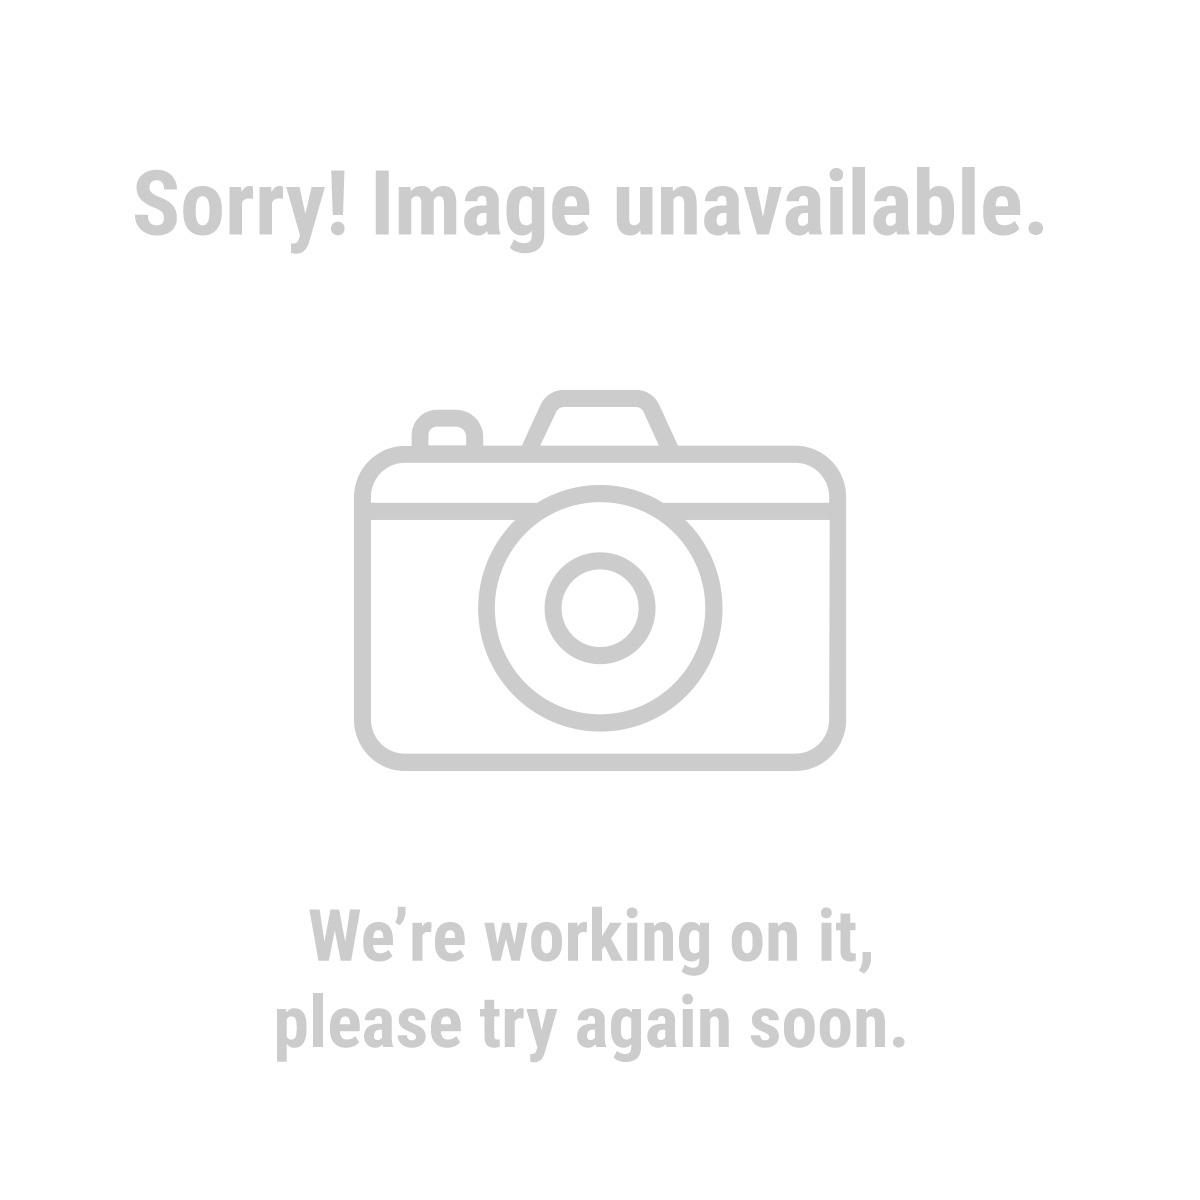 HFT 66832 30 Ft. Retractable Cord Reel